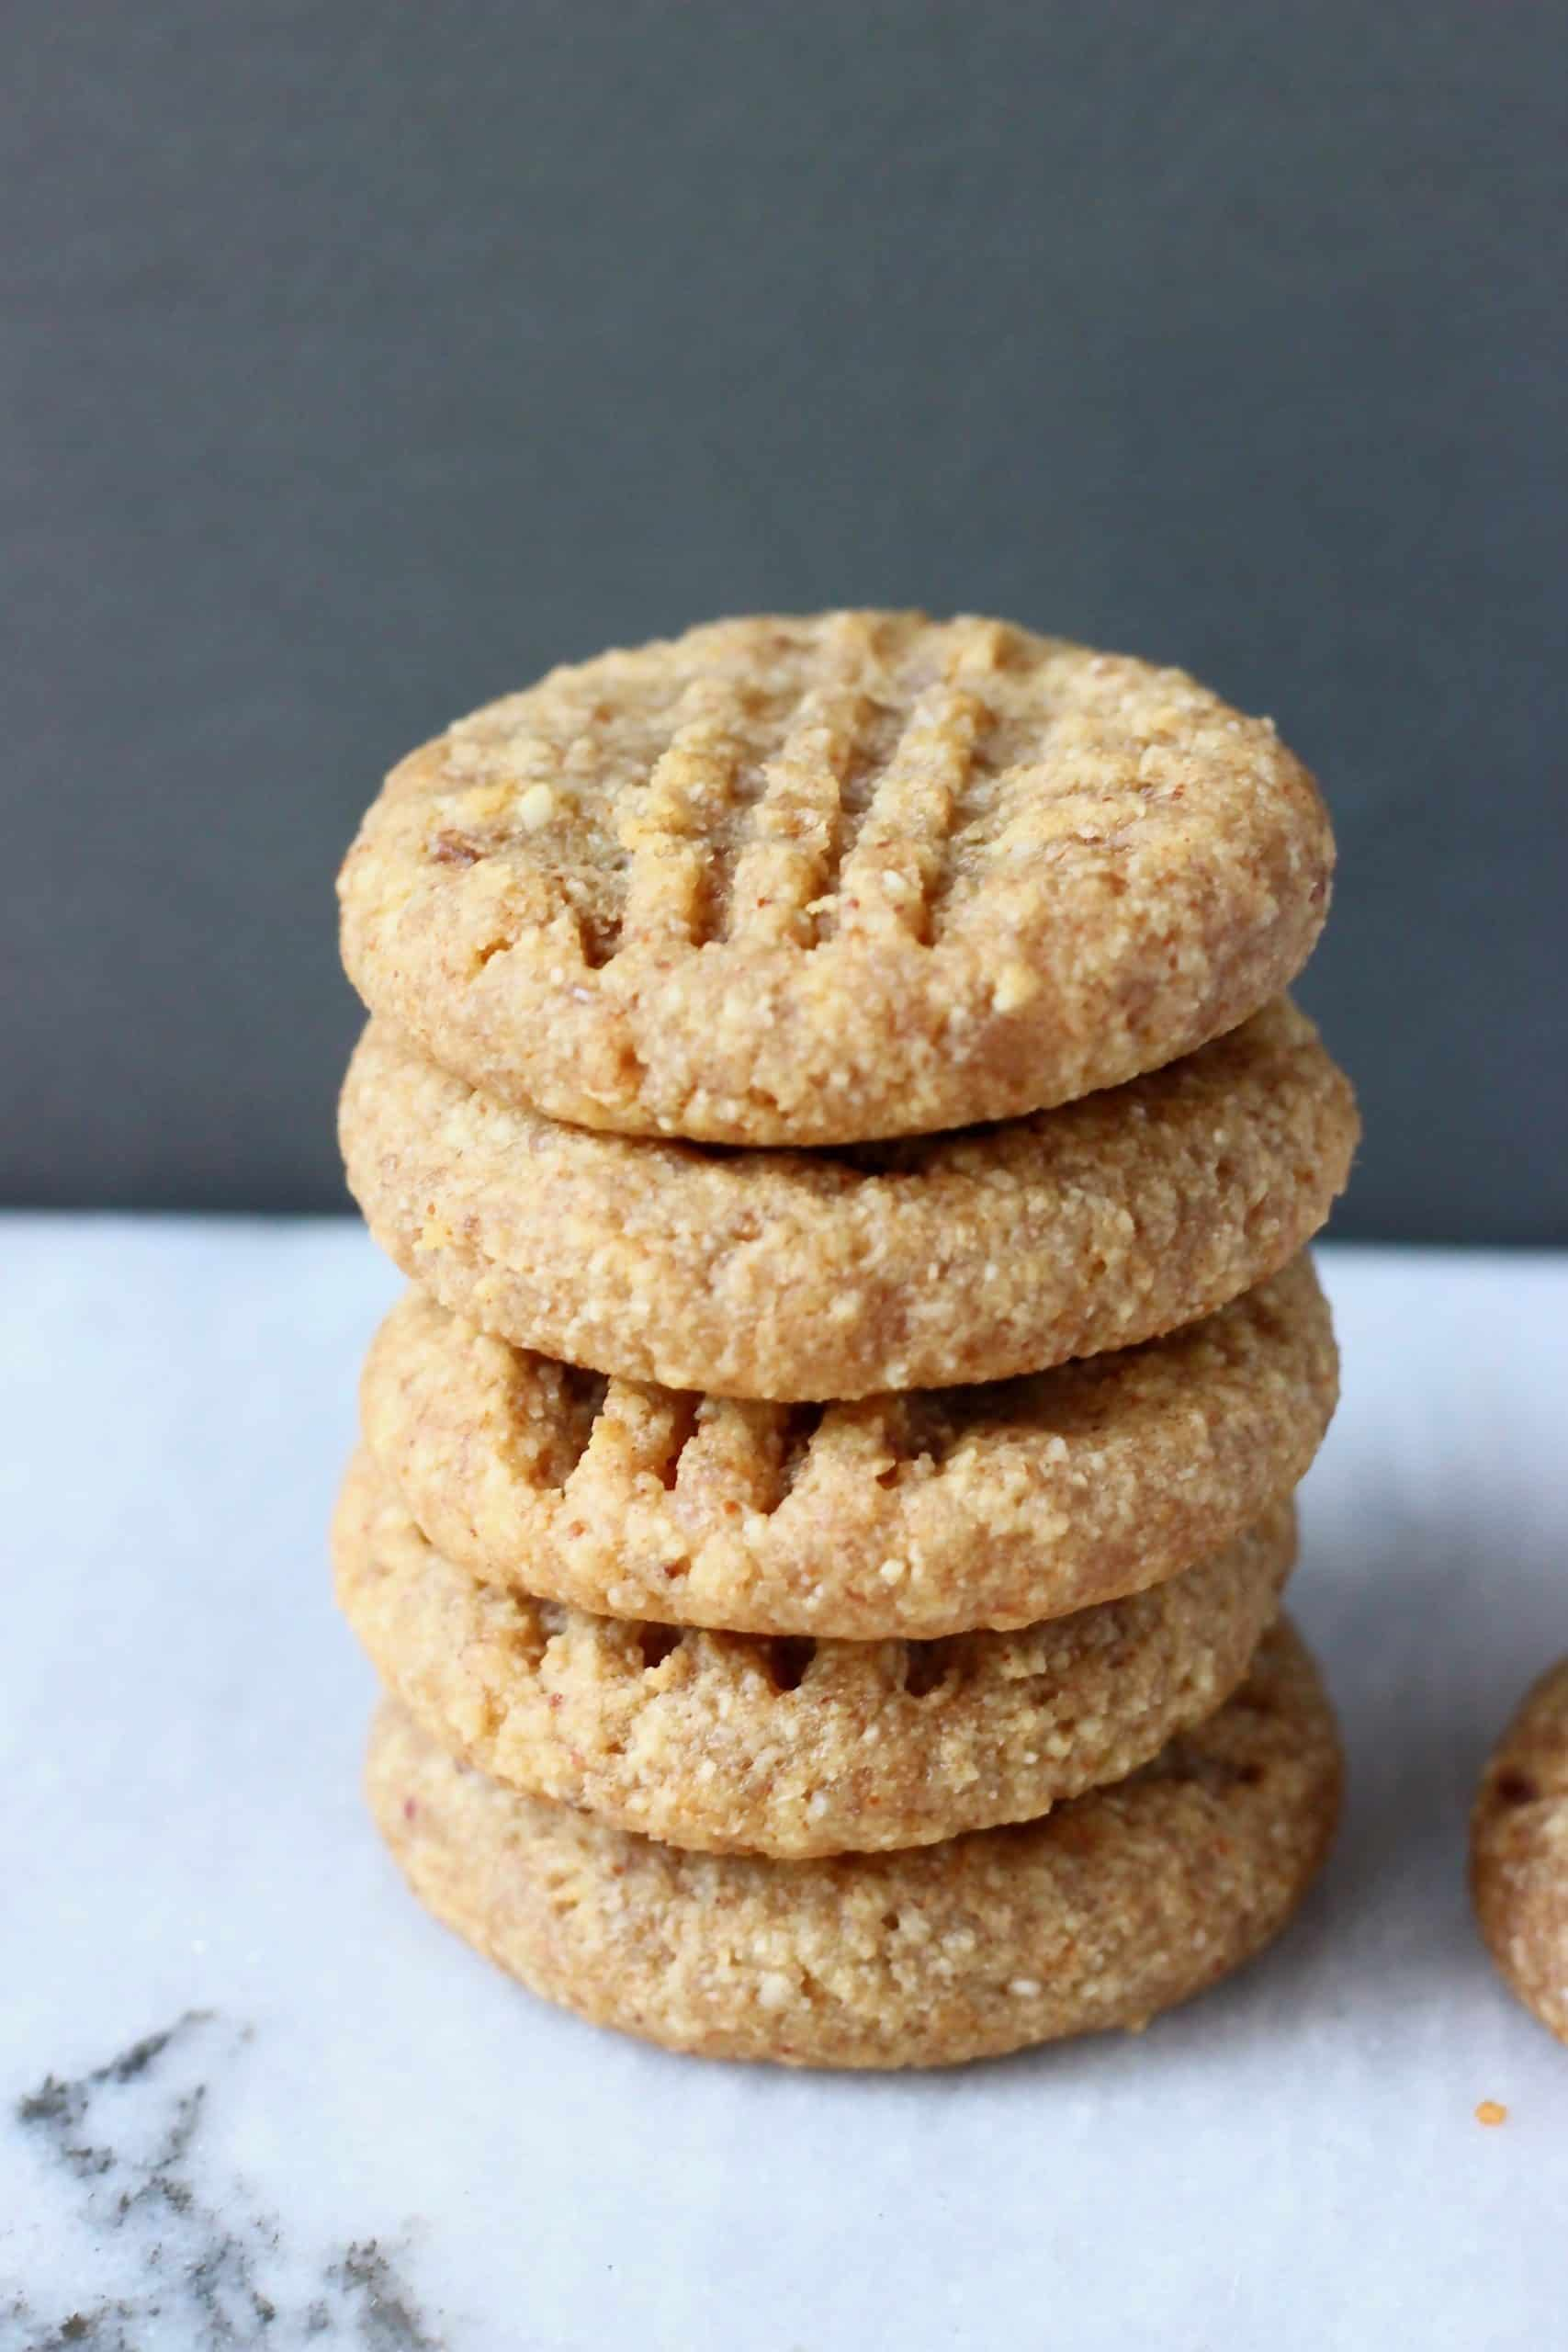 A stack of five peanut butter cookies on a marble slab against a grey background